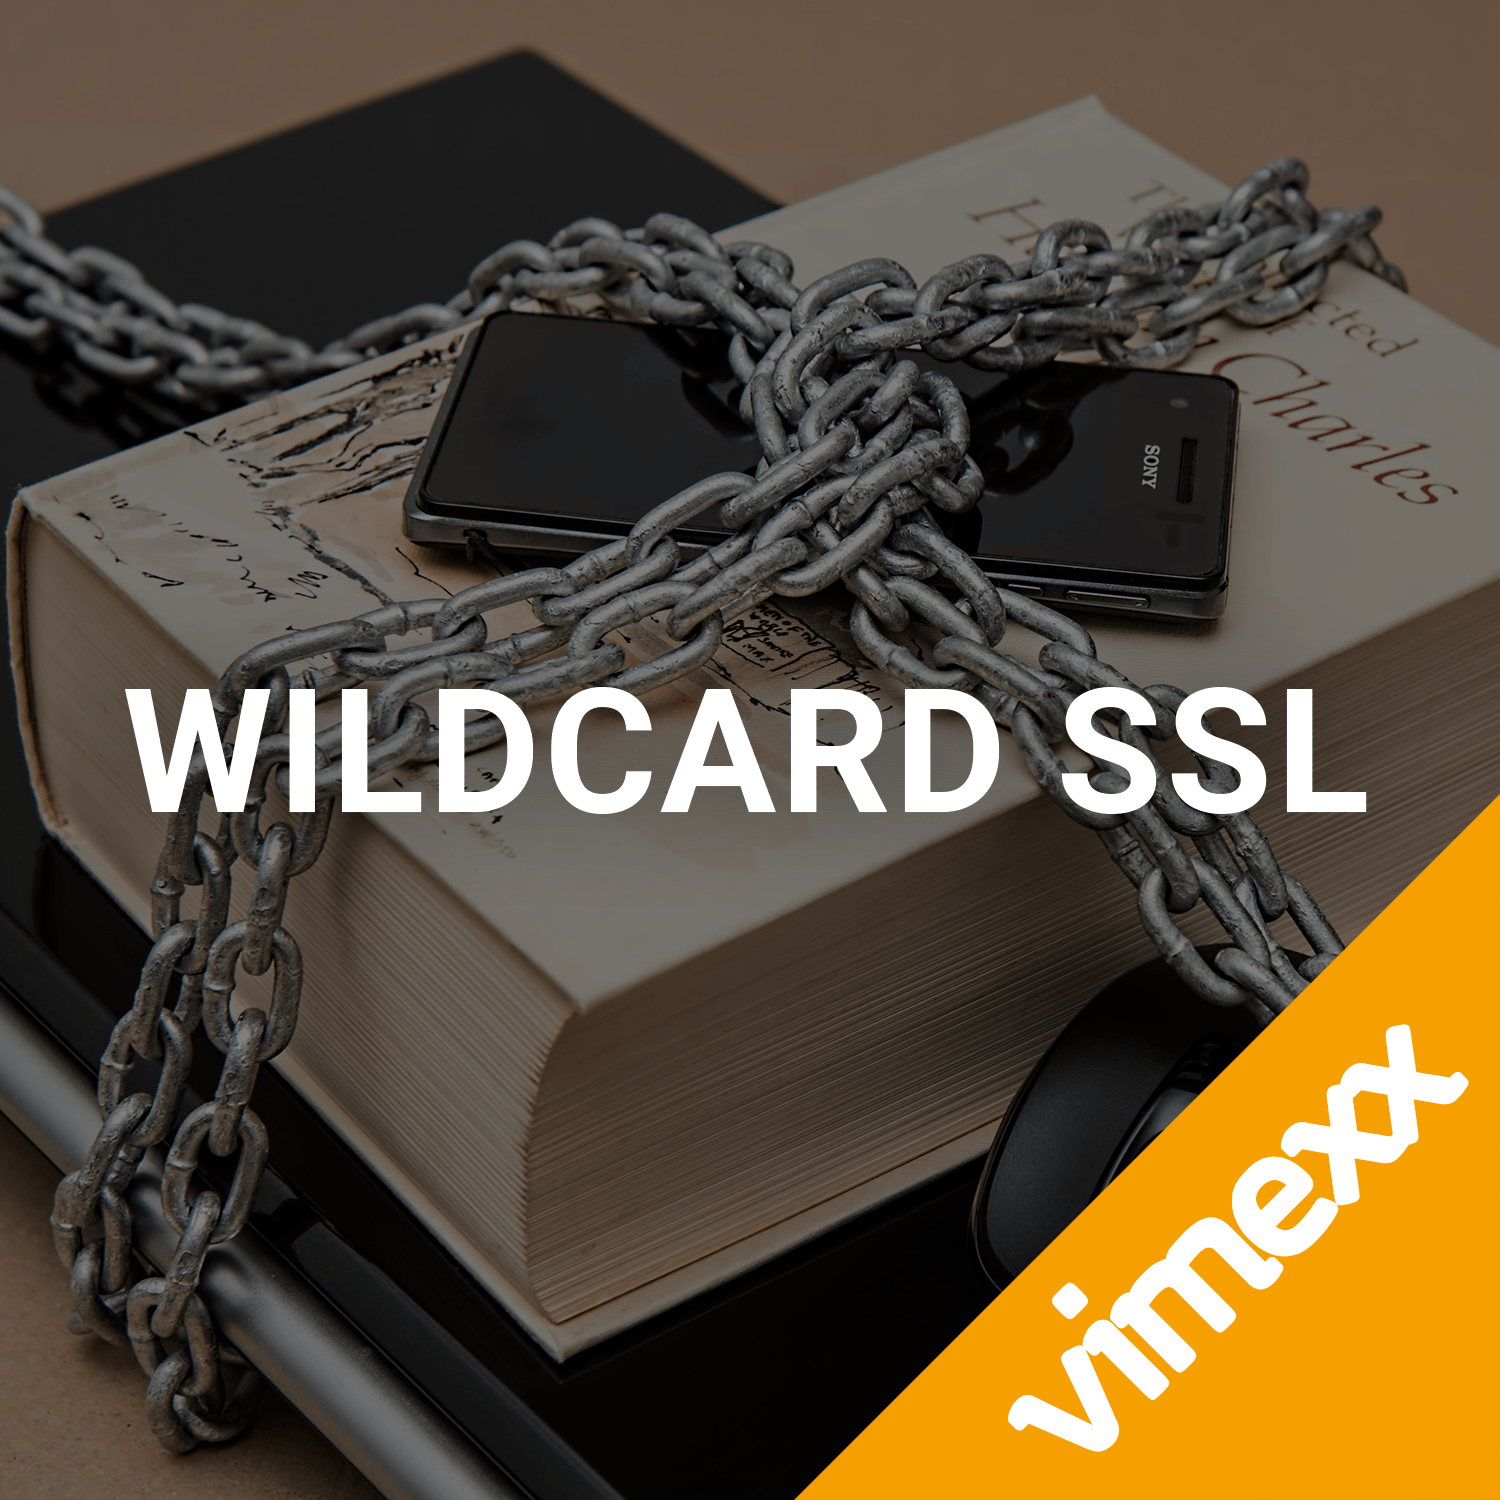 Wildcard SSL lets encrypt